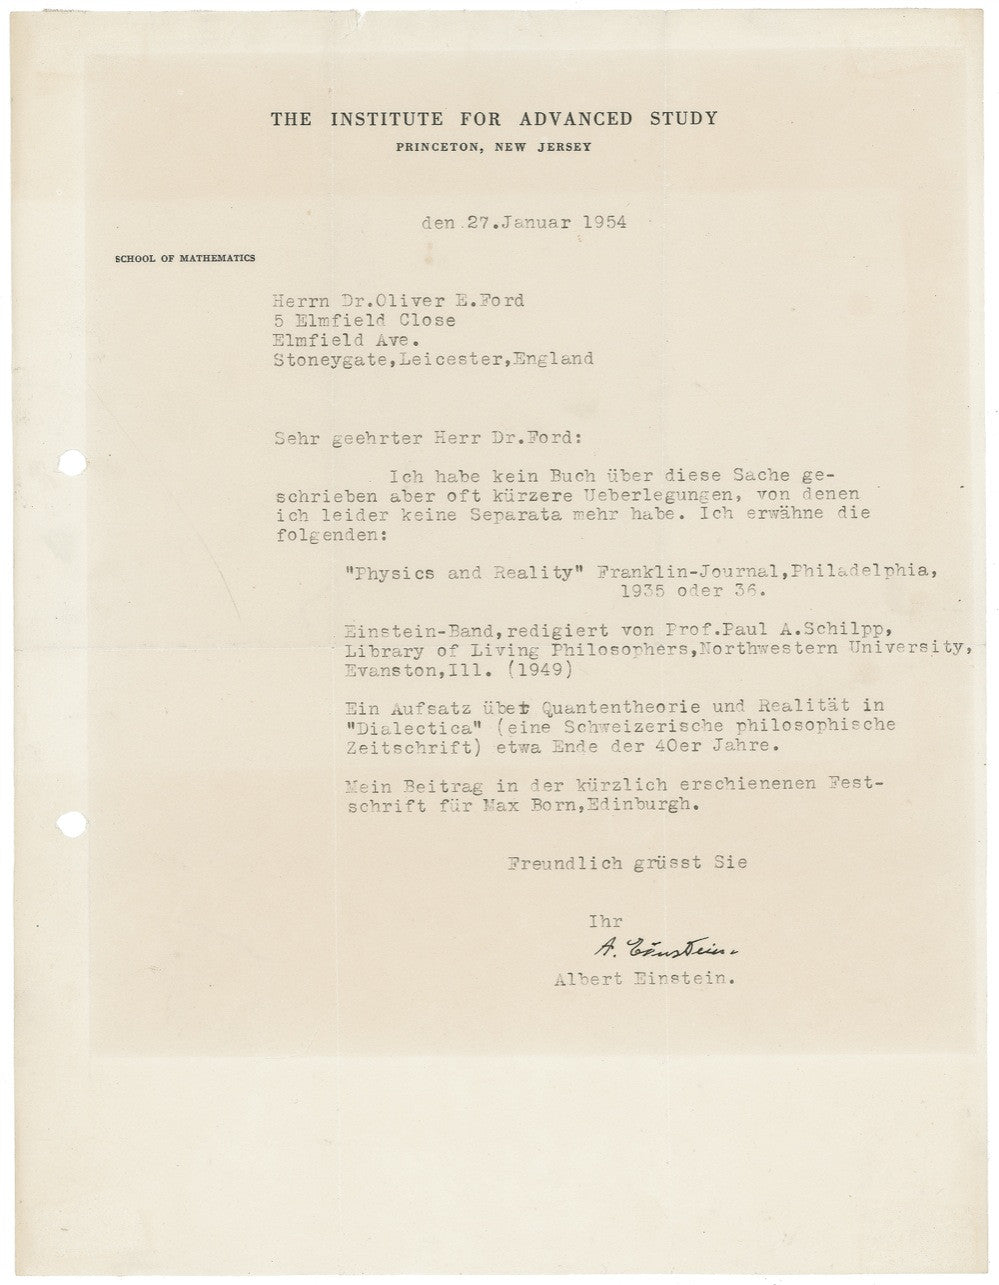 Albert Einstein's TLS signed letter to Dr Oliver Ford